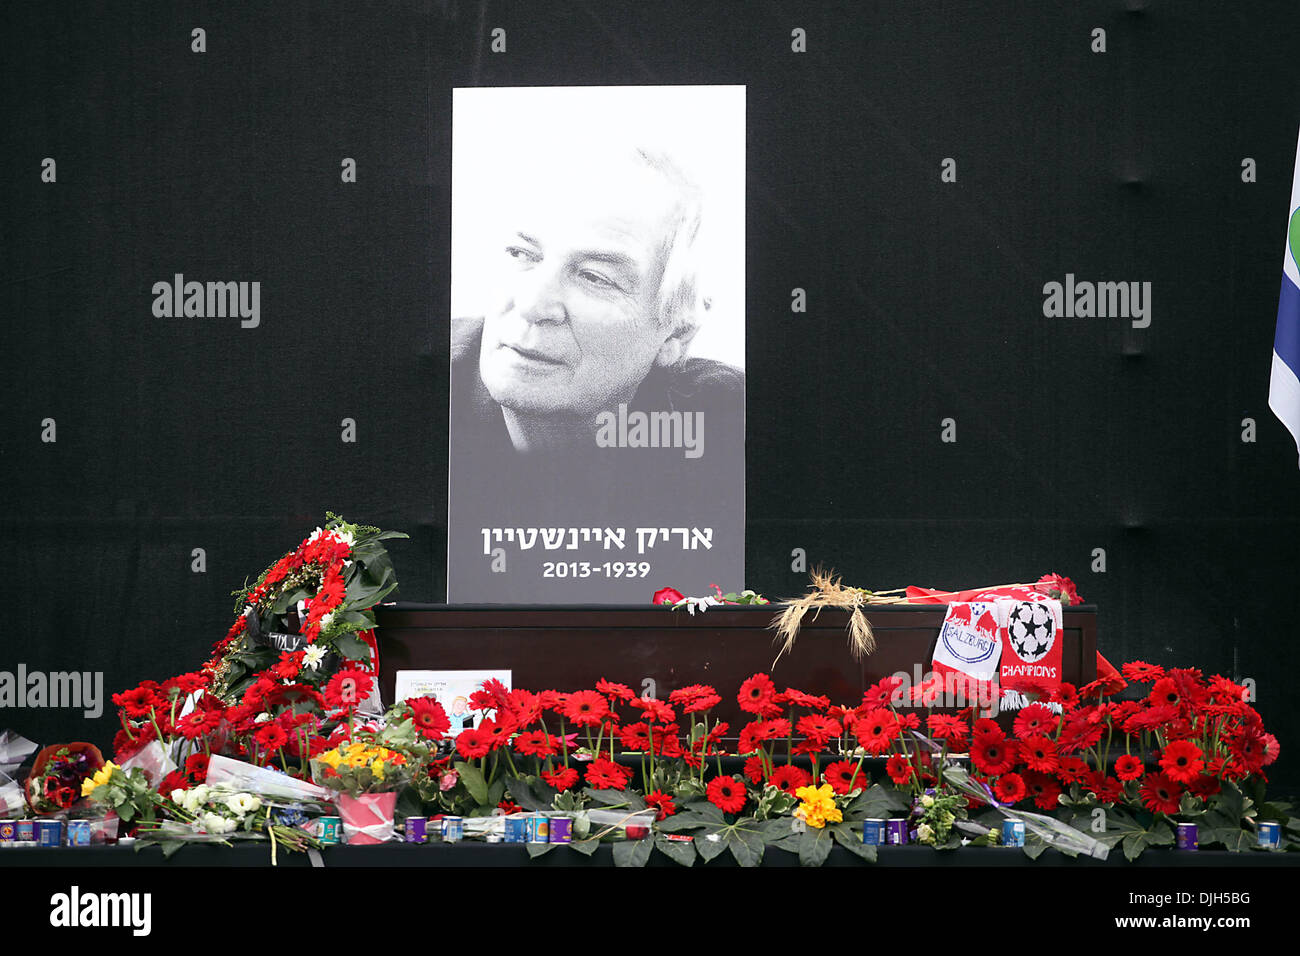 Tel Aviv, Israel. 28th Nov, 2013. A portrait photograph and the coffin of late Israeli singer and songwriter Arik Einstein are seen during a memorial ceremony before his funeral at Rabin's Square in Tel Aviv, Israel, Nov. 27, 2013. Arik Einstein died of a heart failure at the age of 74 on Nov. 26. Thousands of Israelis came to pay their last respects to the country's great cultural figure. (Xinhua/JINI)(lrz) Credit:  Xinhua/Alamy Live News - Stock Image